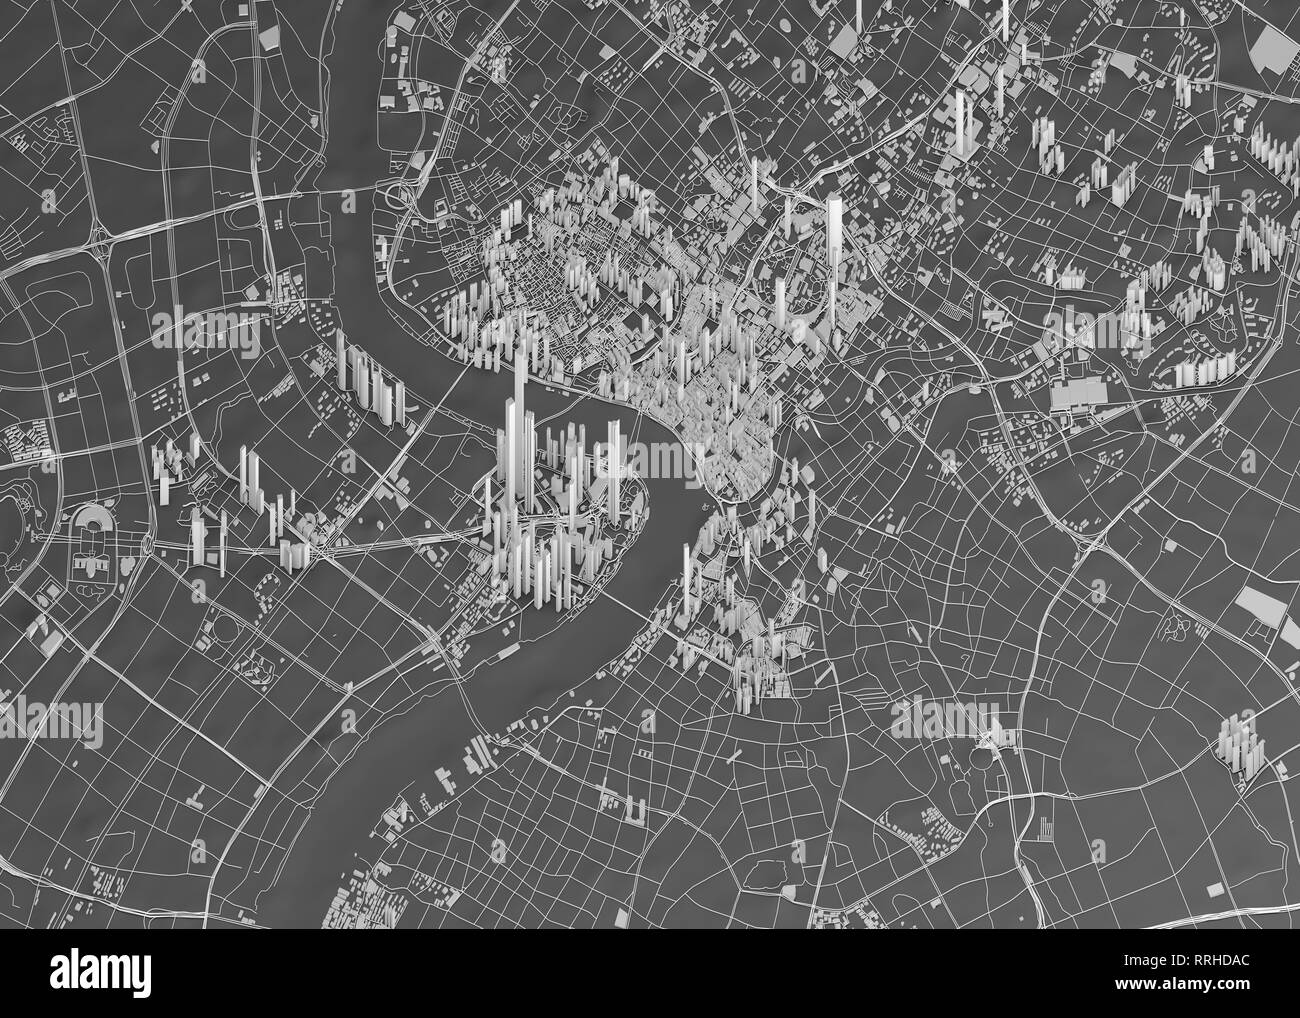 Satellite view of Shanghai, map of the city with house and ... on space maps, radar maps, live maps, lake maps, types of maps, aerial maps, street maps, military maps, temperature maps, digital maps, pomorskie poland maps, msn maps, dvd maps, earth maps, topographical maps, internet maps, weather maps, gis maps, sites atlas thematic maps, topographic maps,